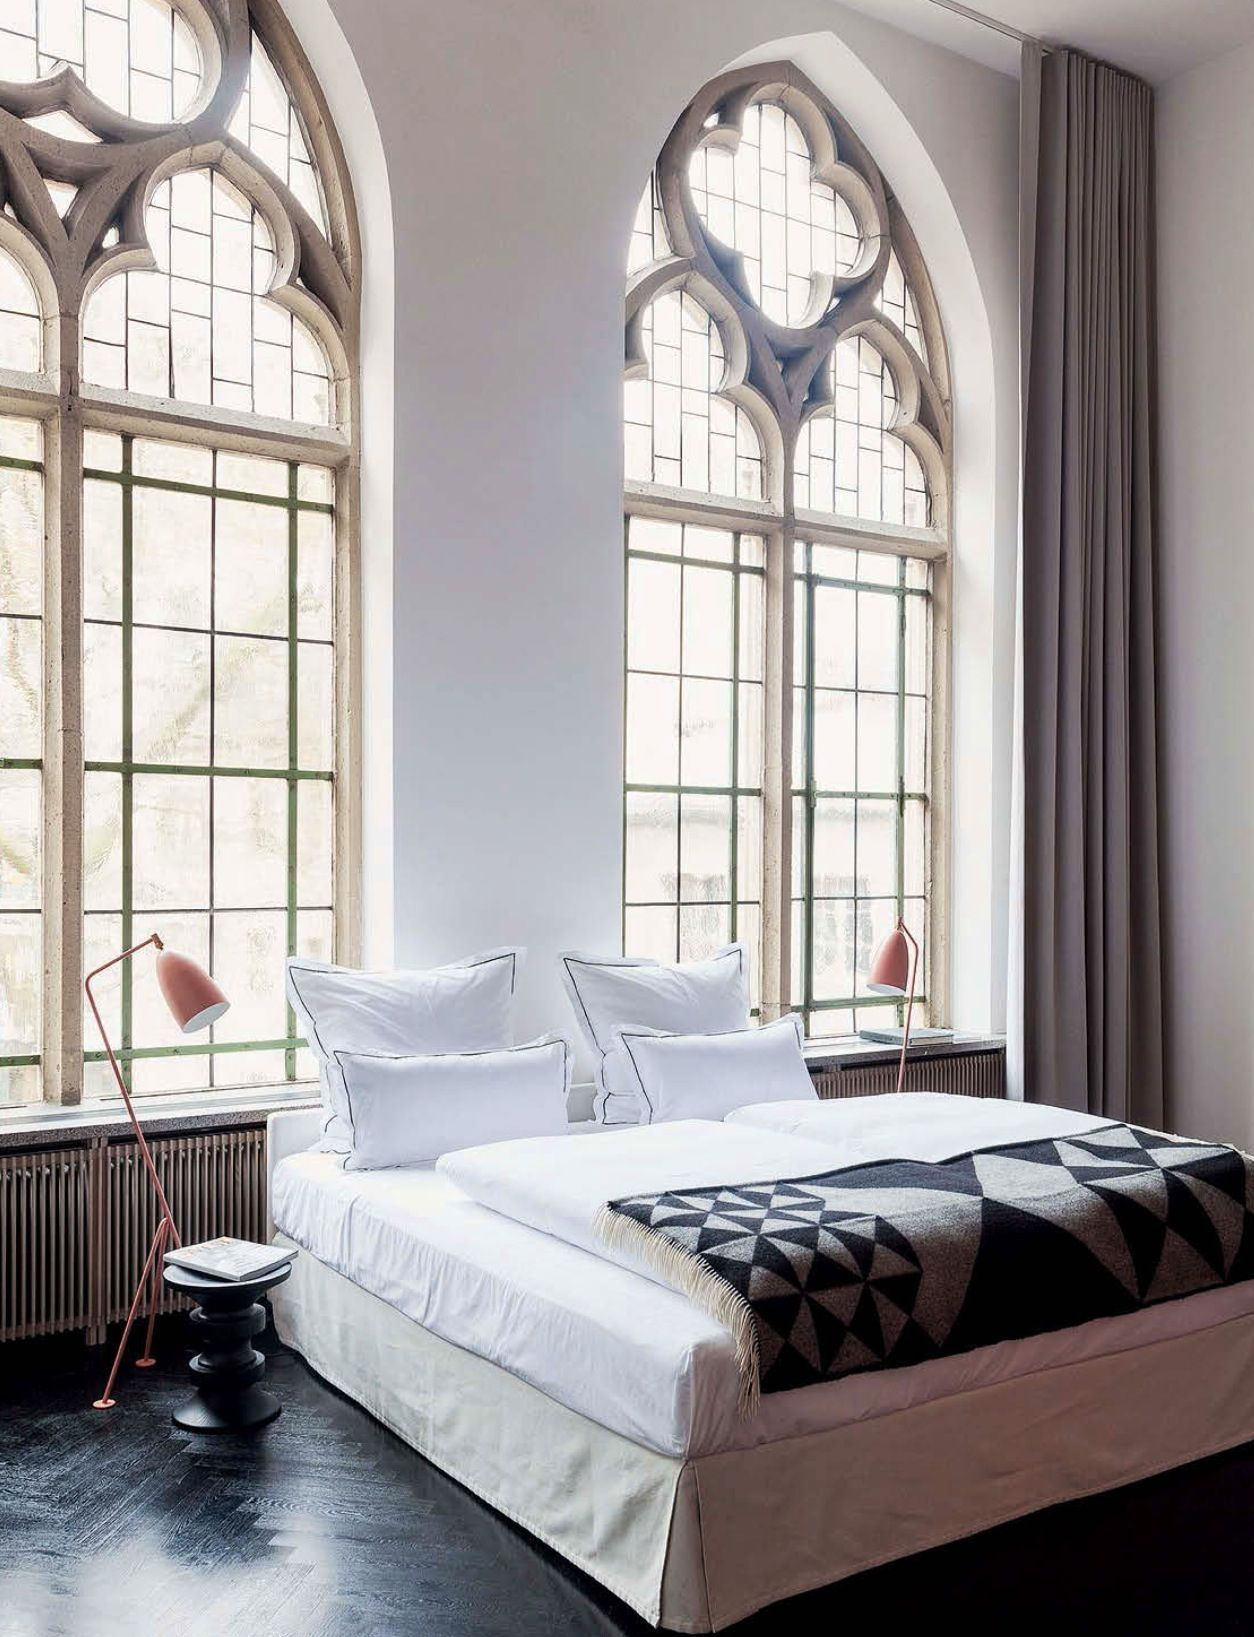 The Qvest Köln Bedroom Qvest Hotel Köln Bedroom Pinterest